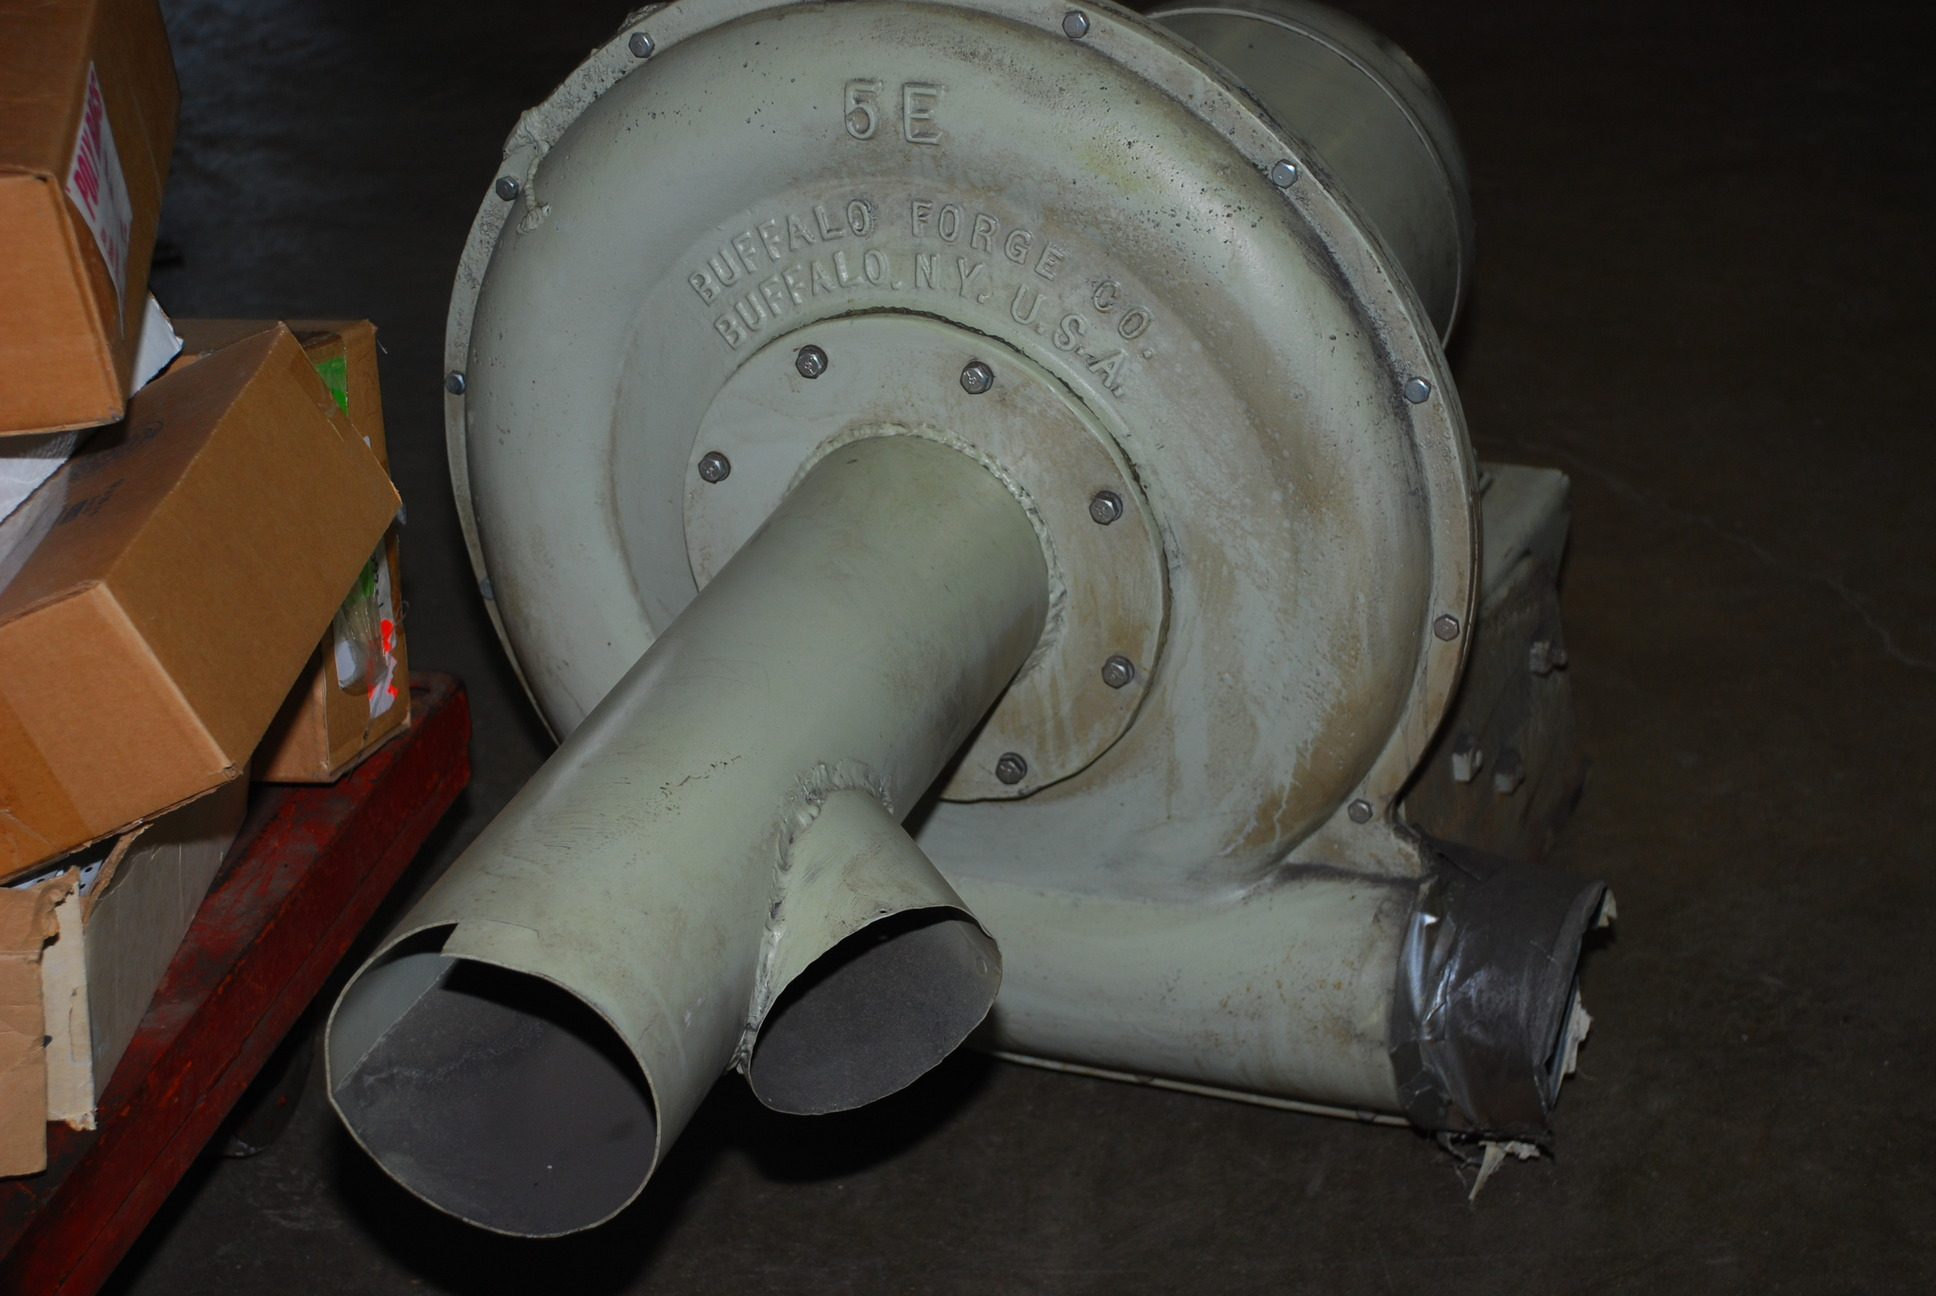 9878-0013 jpg of Buffalo Forge Industrial Blower JX 5E 7 5HP